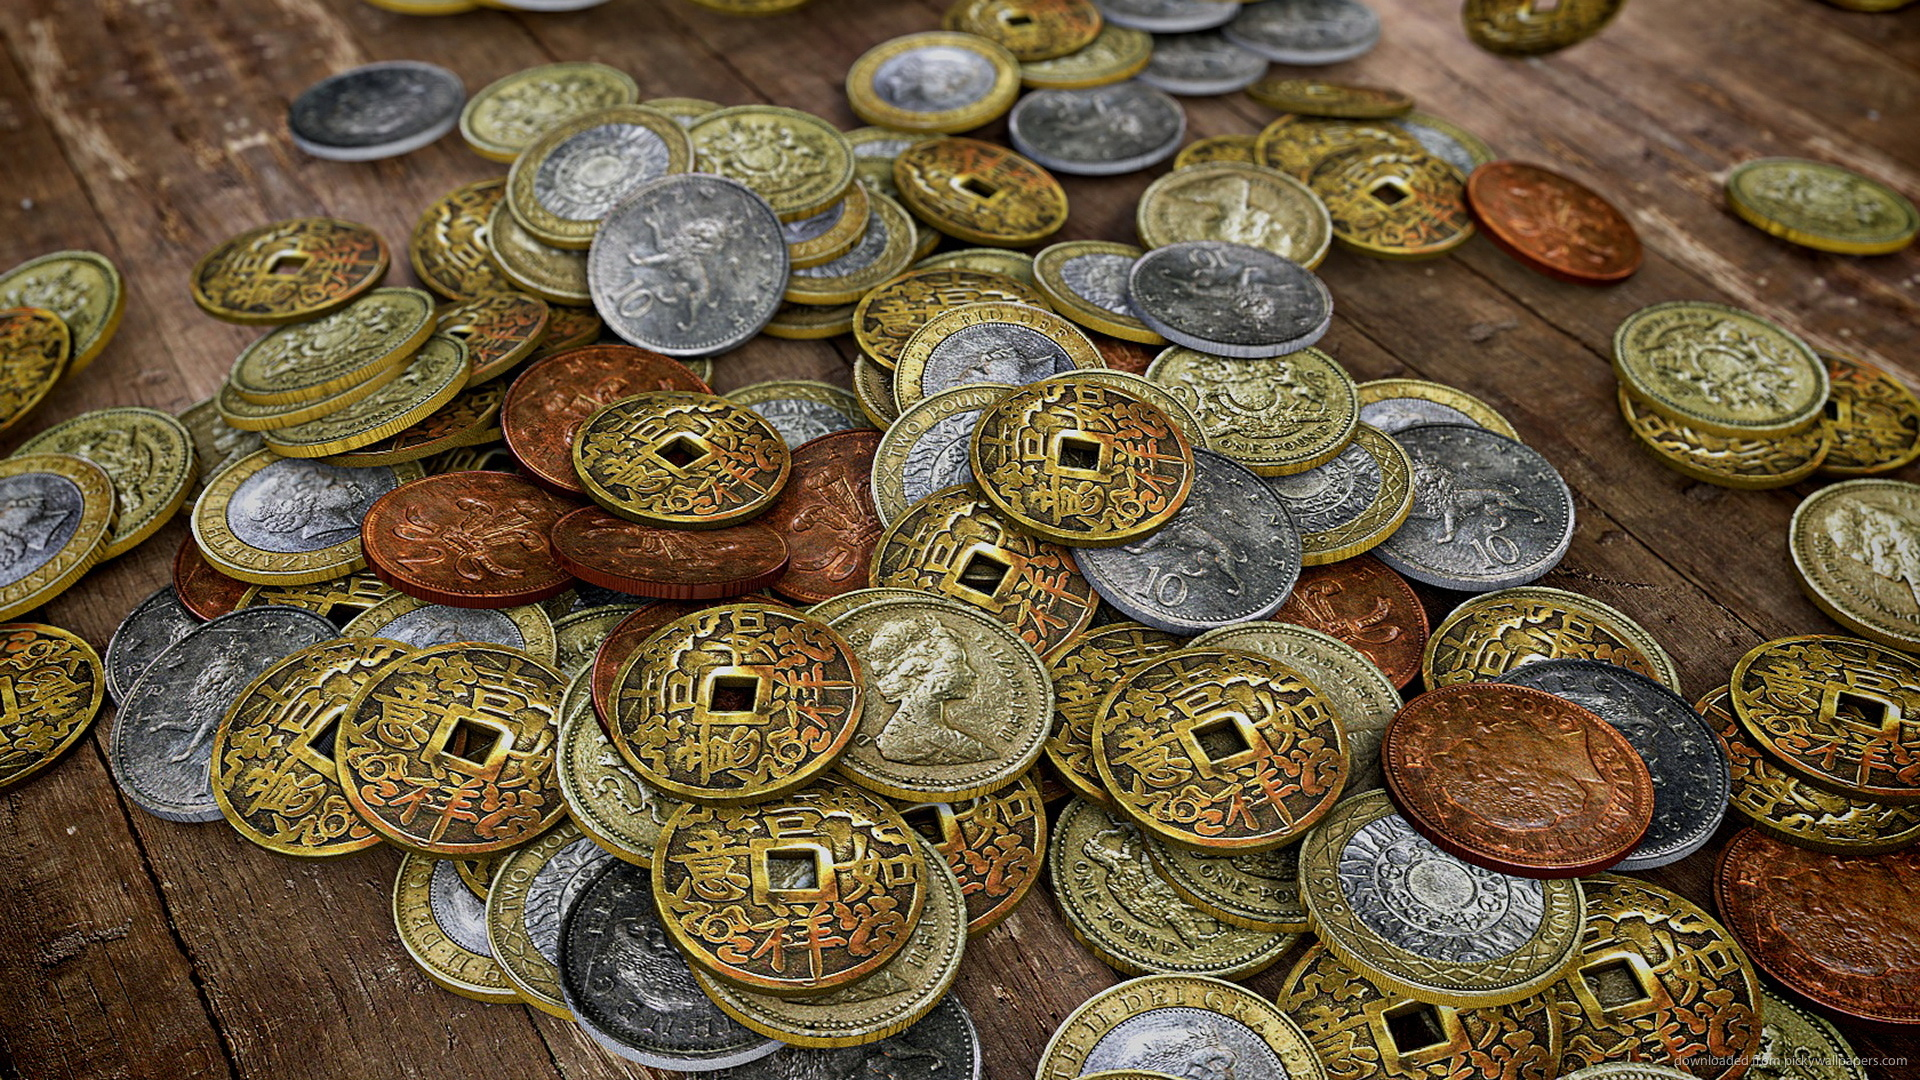 Ancient Money Coins Up Close Wallpaper Screensaver For Kindle3 And DX 1920x1080